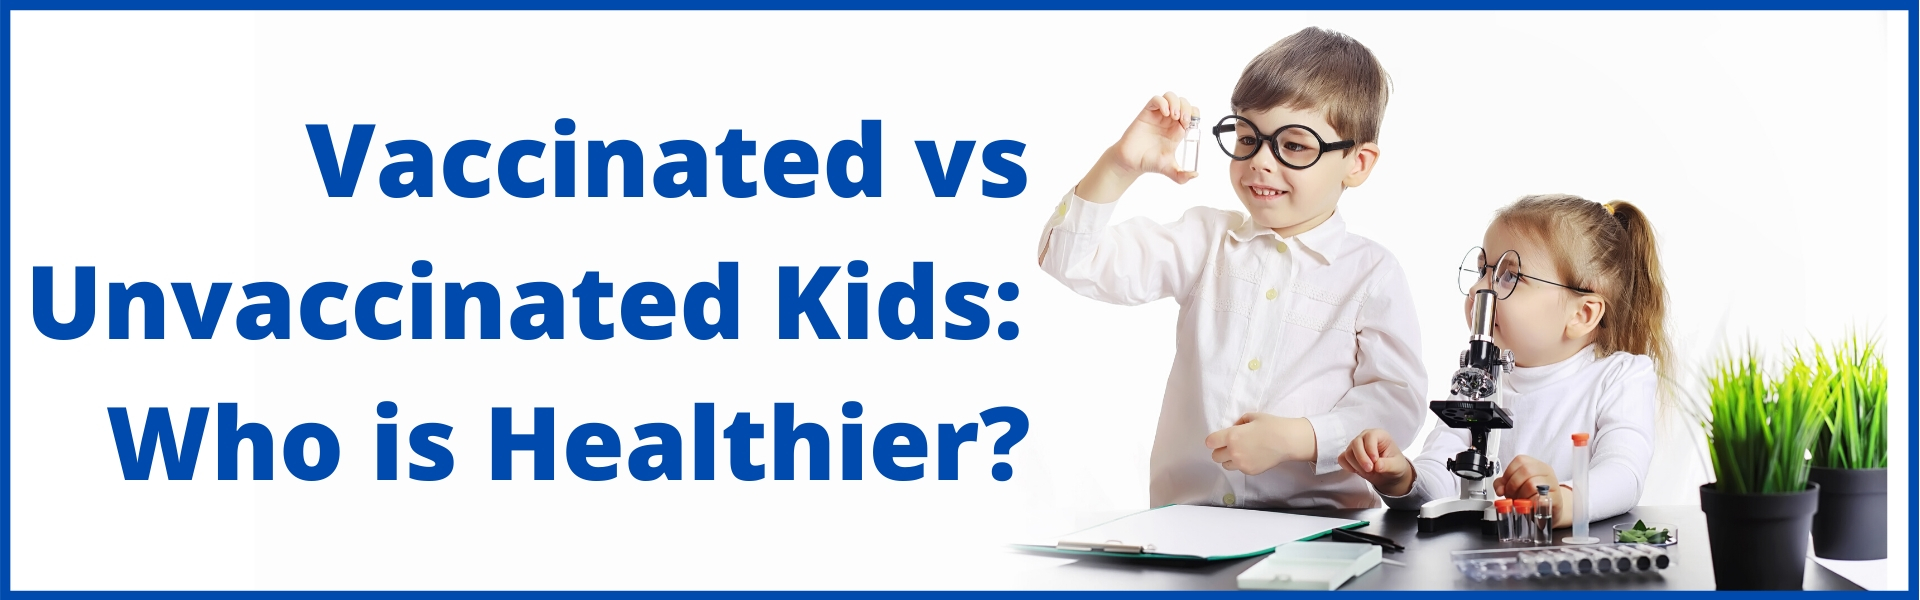 Vaccinated vs Un-vaccinated Kids Who is Healthier